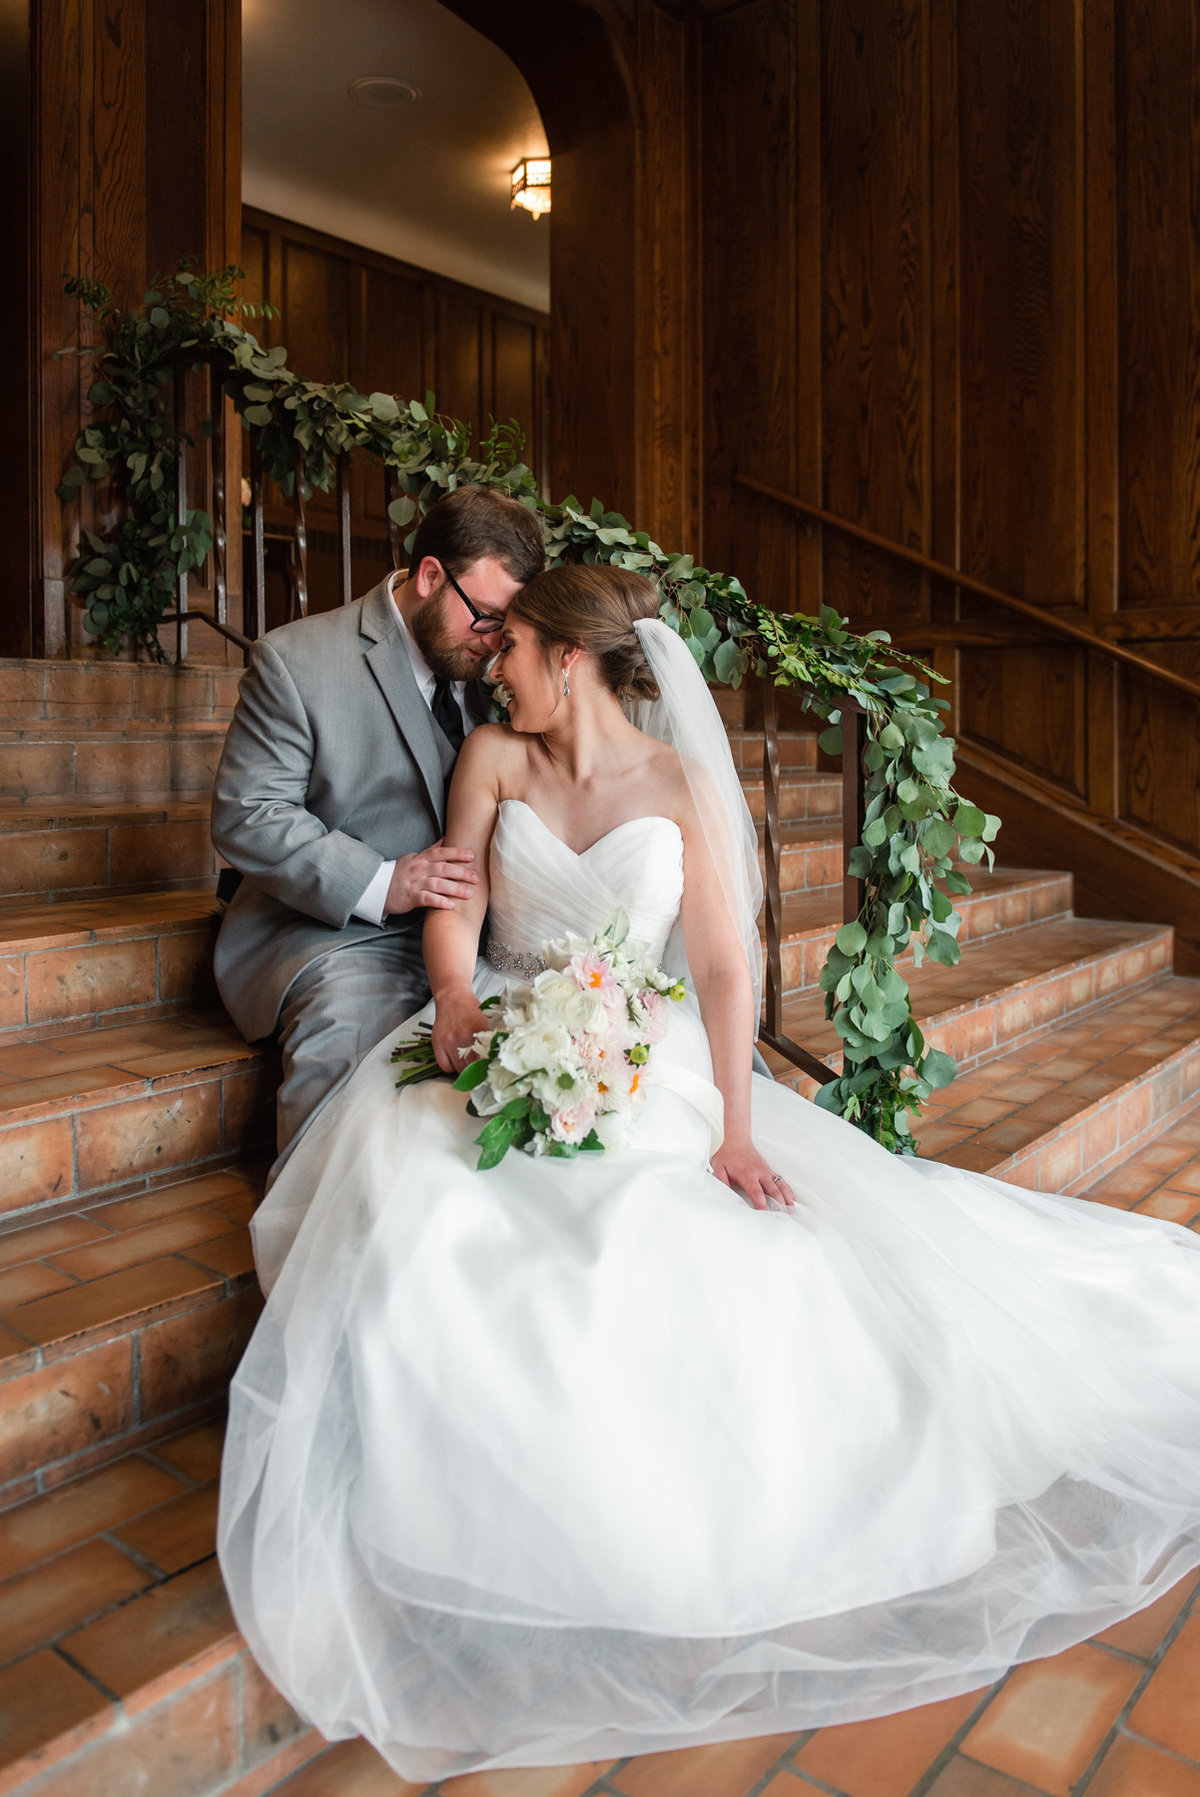 union avenue baptist church wedding photo